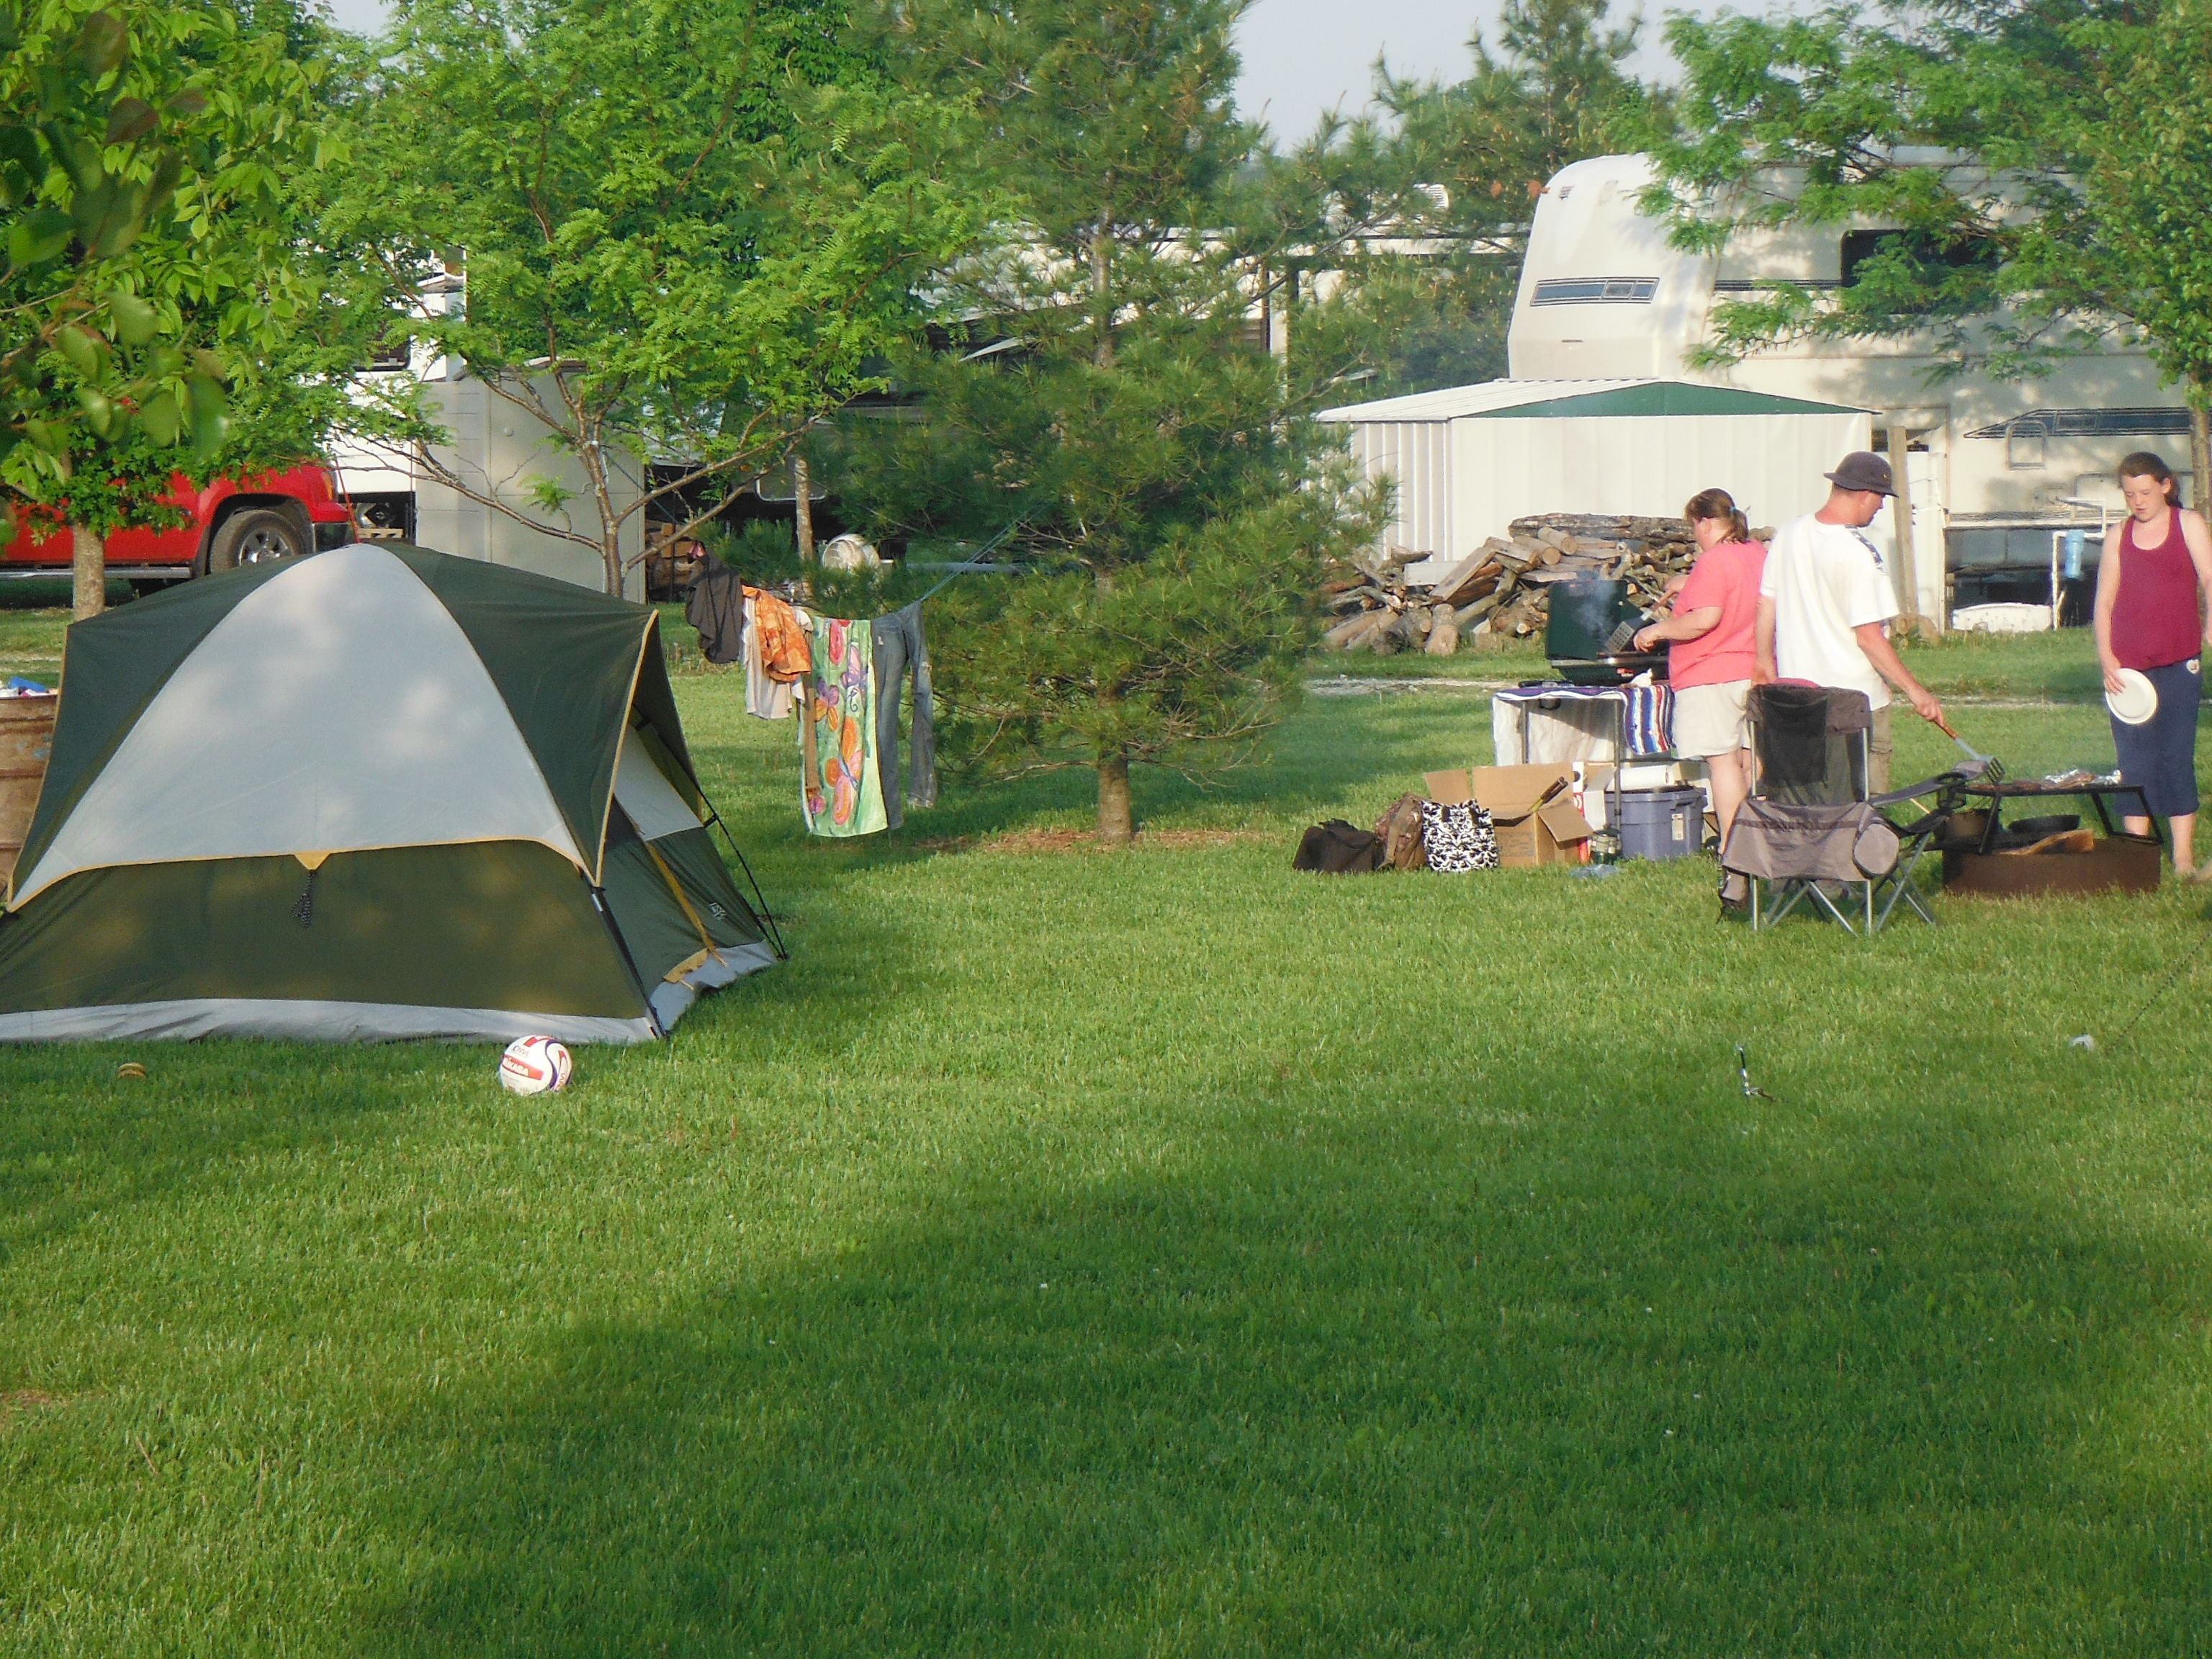 cabinfeveril.com - Tent area